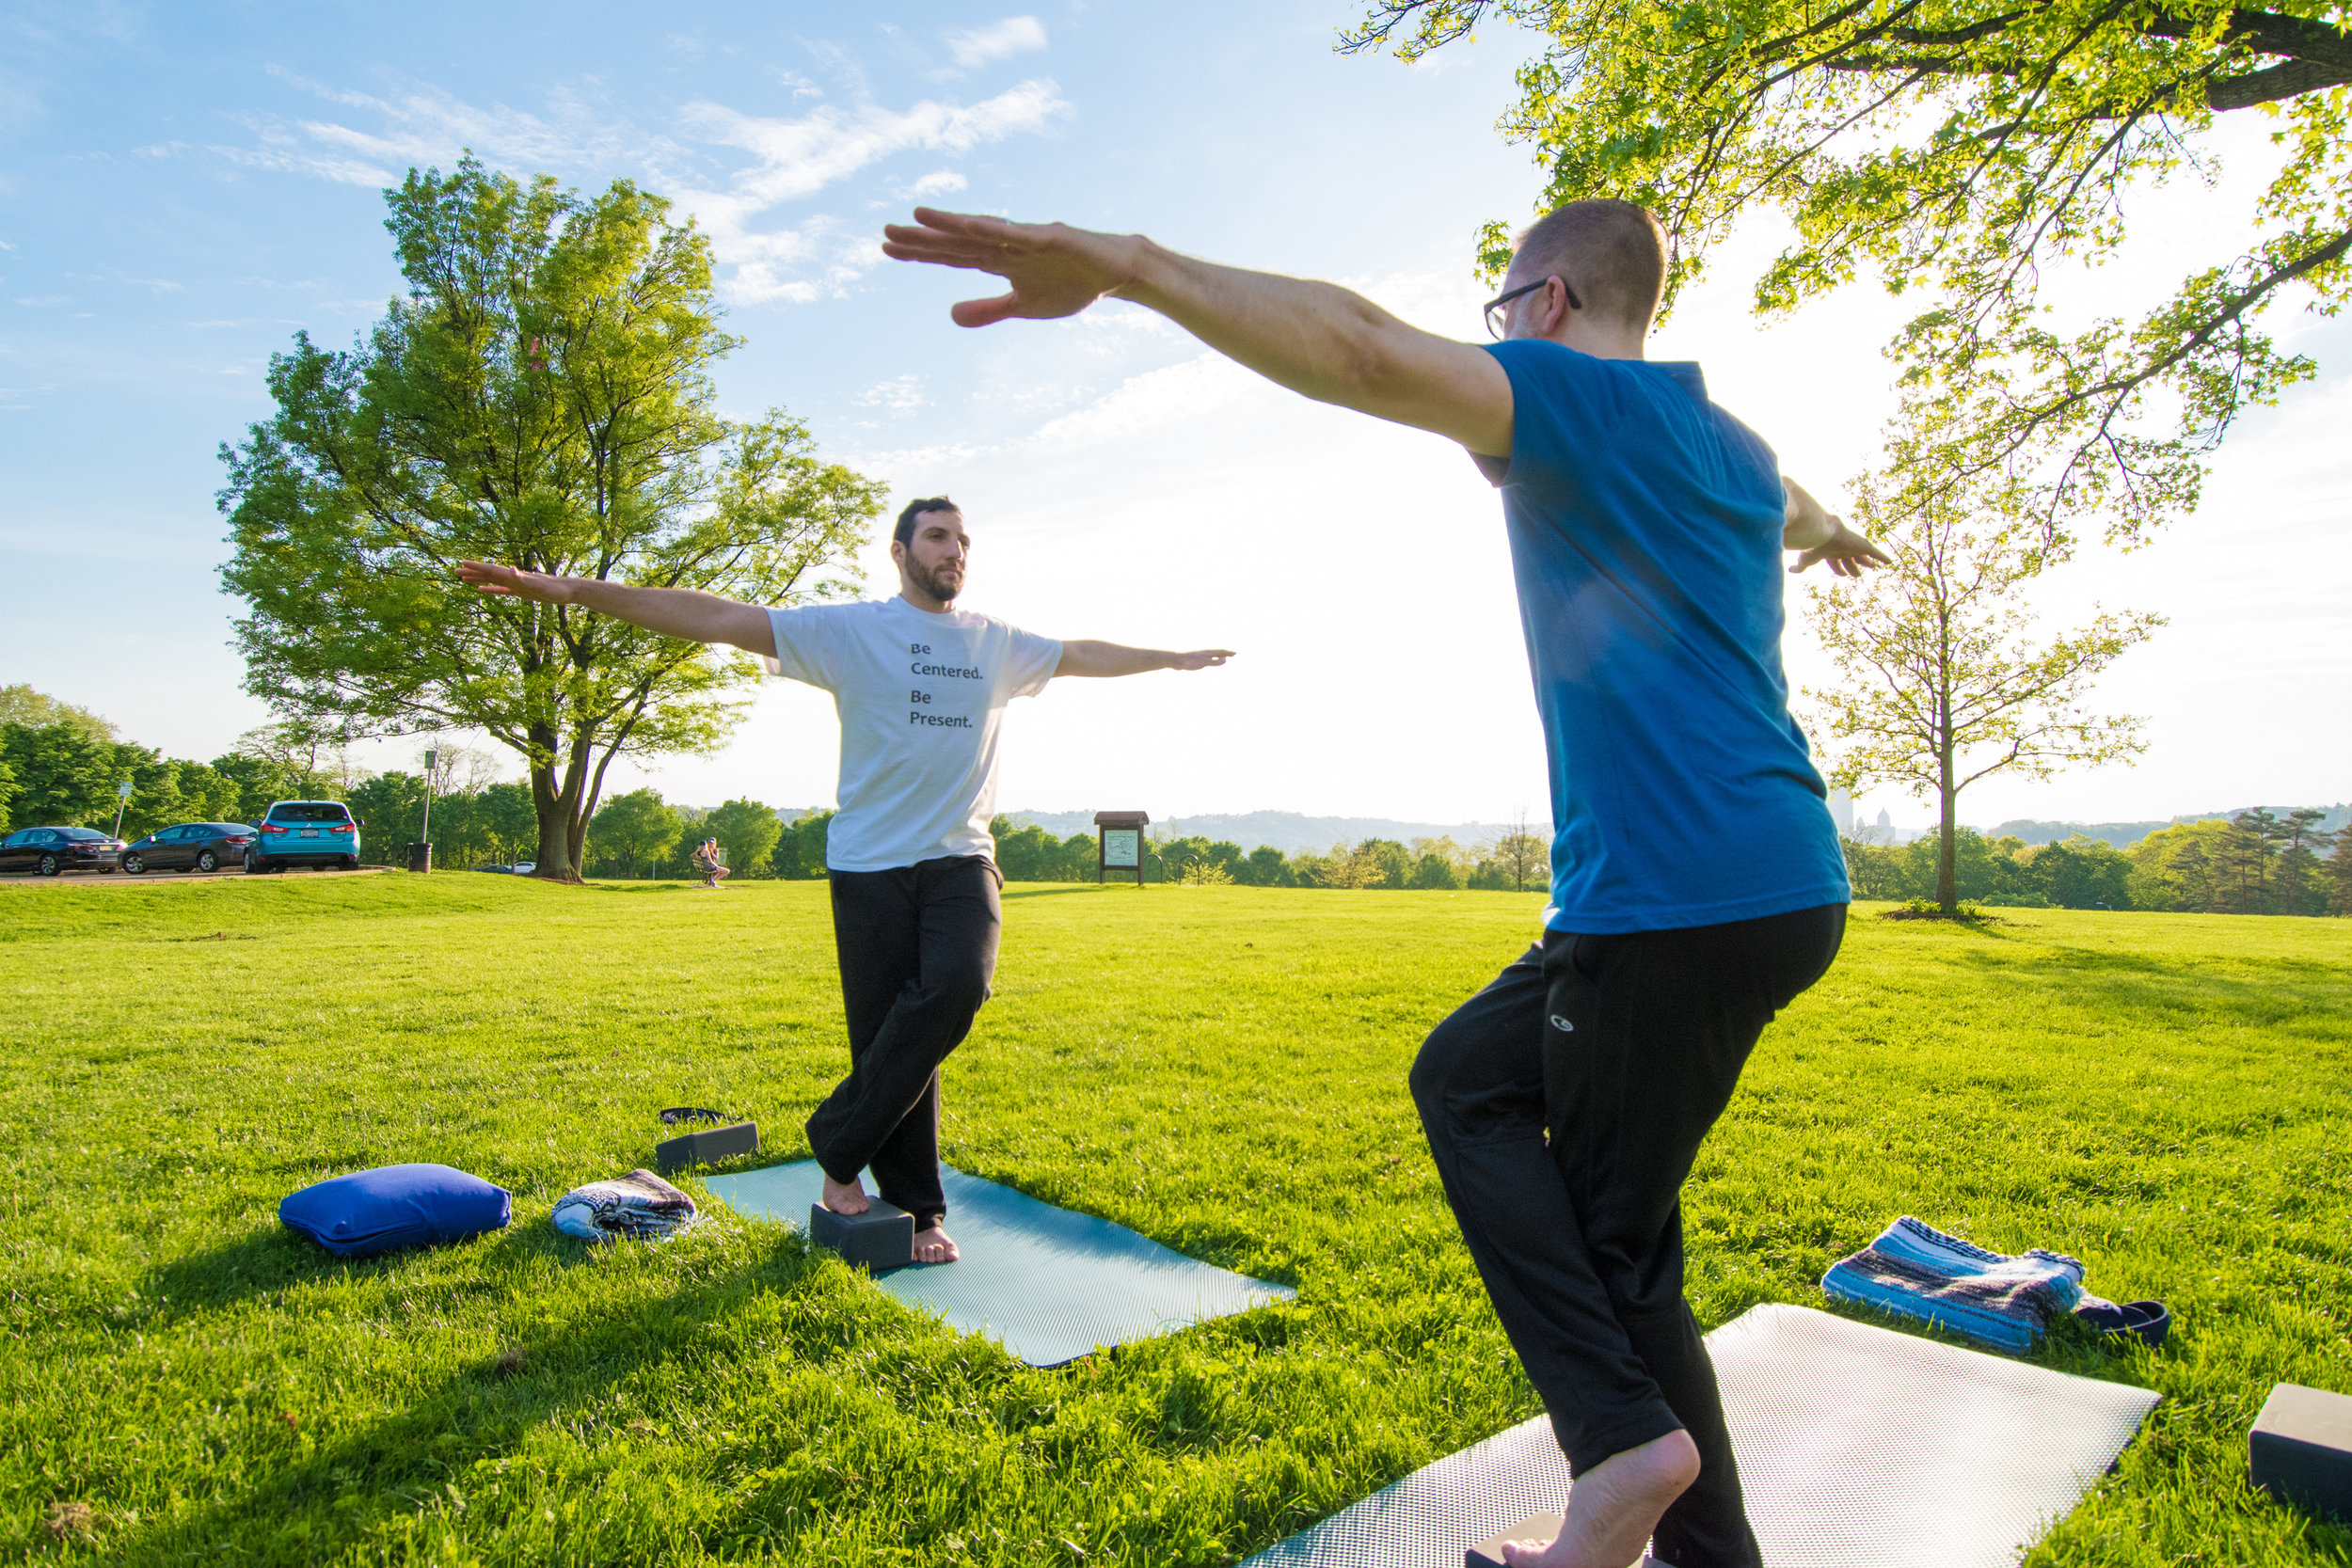 Yogic Coaching - An exclusive Centered Presence, Ltd. advanced technique that combines elements of coaching and yoga into a two-hour transformative session.